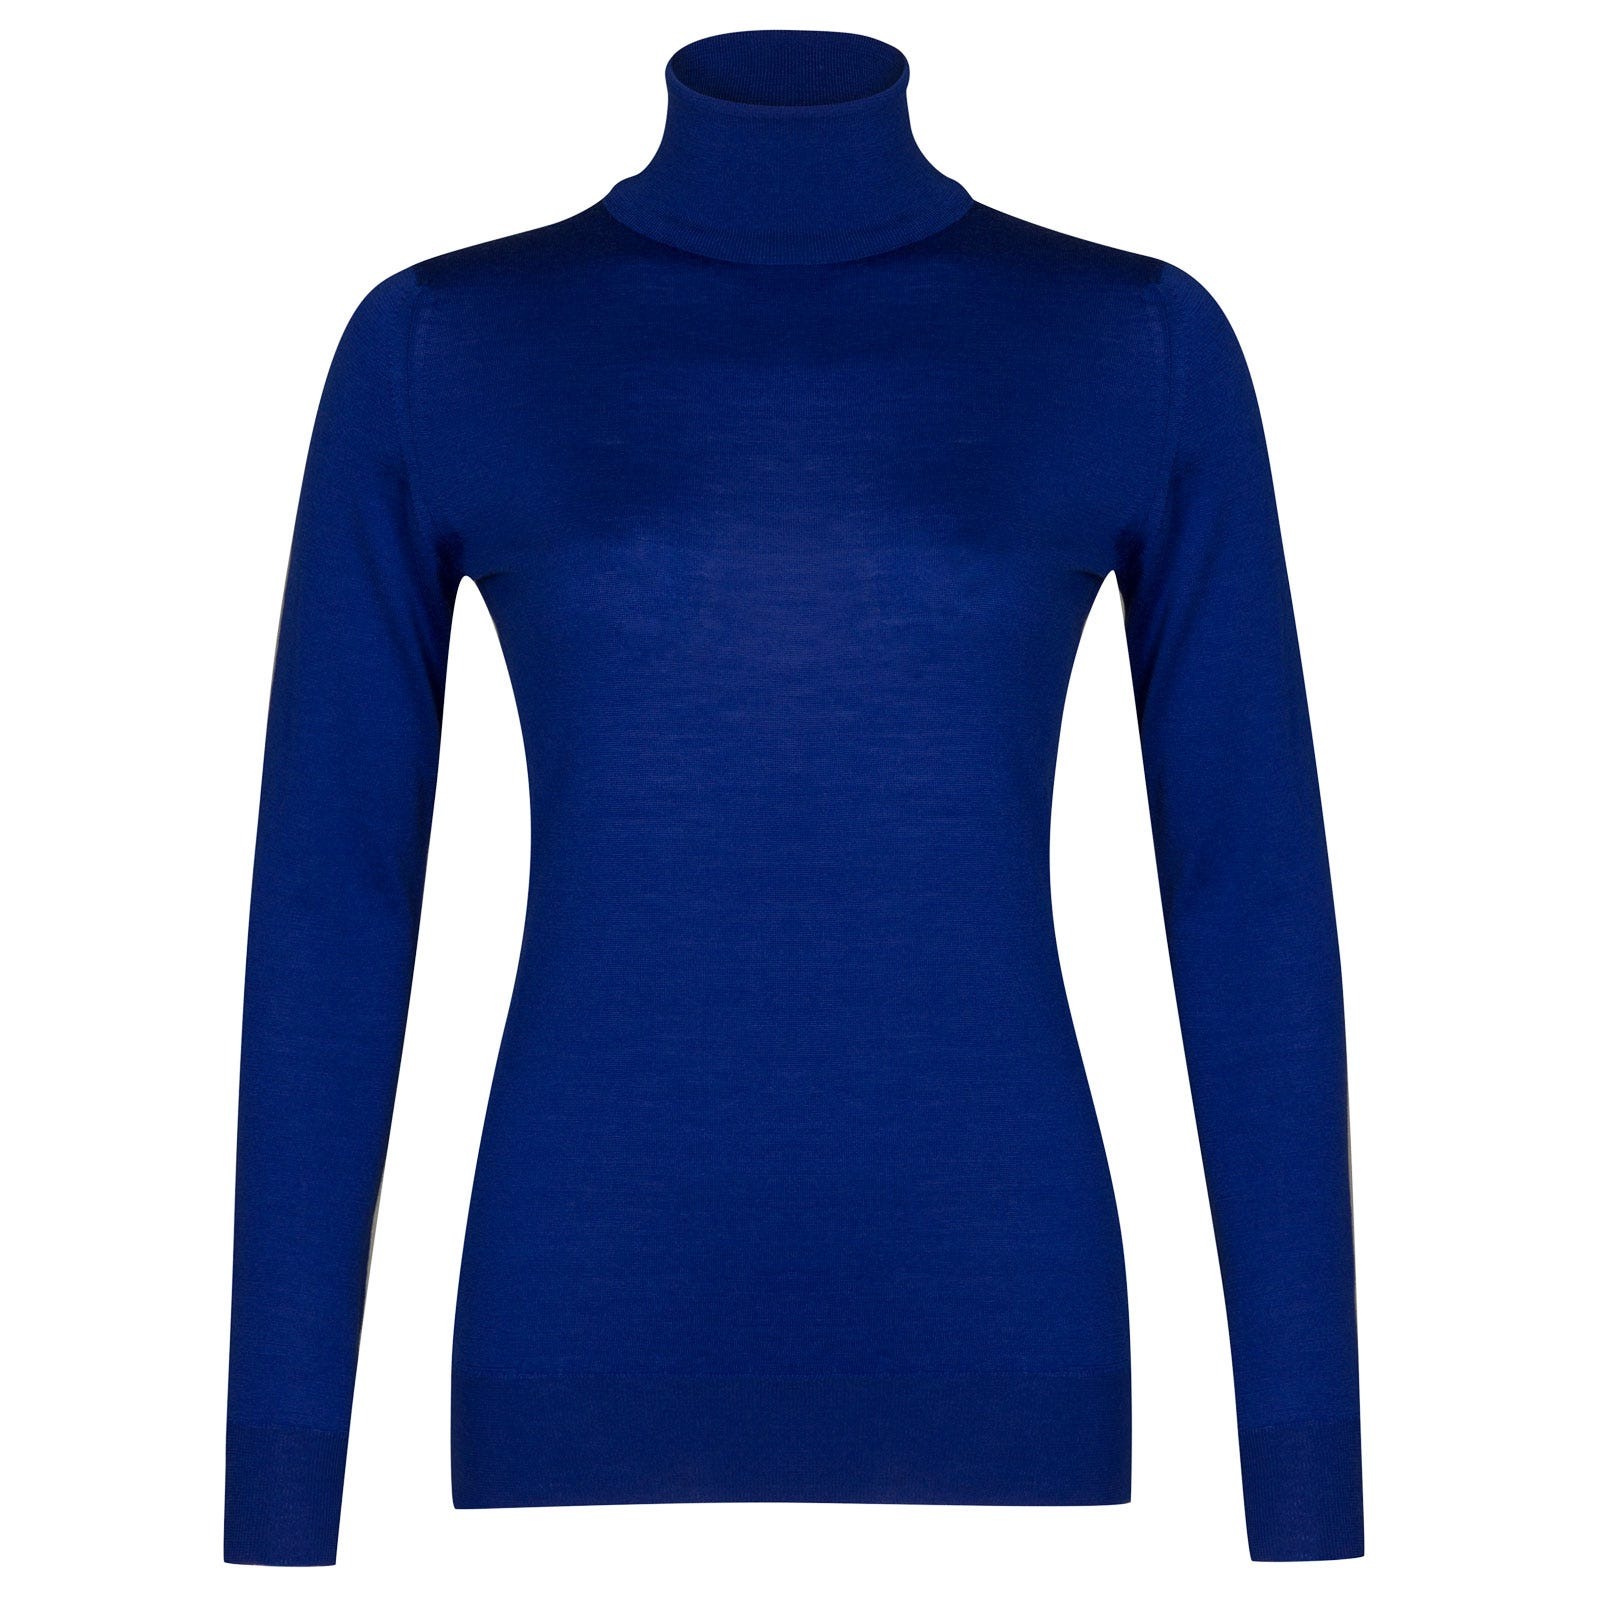 John Smedley Catkin Merino Wool Sweater in Coniston Blue-L